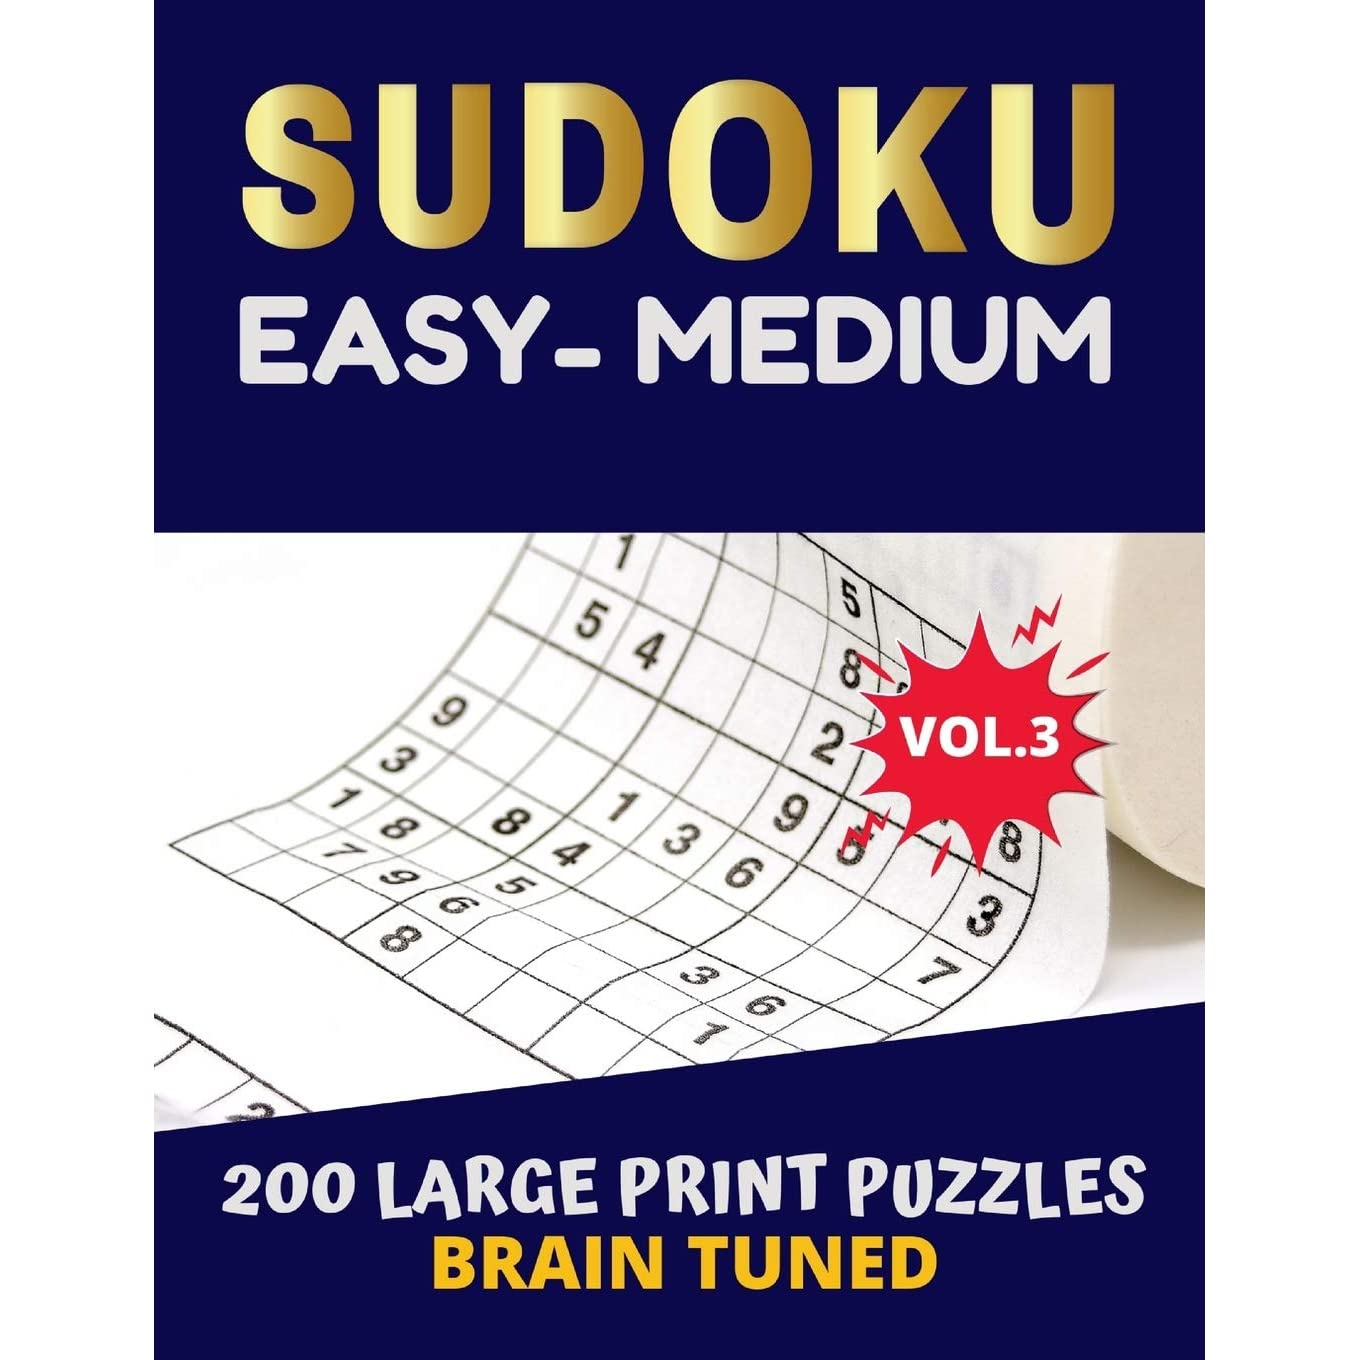 Brain Tuned Vol 3 Sudoku Easy To Medium 200 Large Print Puzzles With Answers Game Very Perfect For Your Brain Fitness Also Great Gift For Adult Free Bonus 100 Games Sudoku